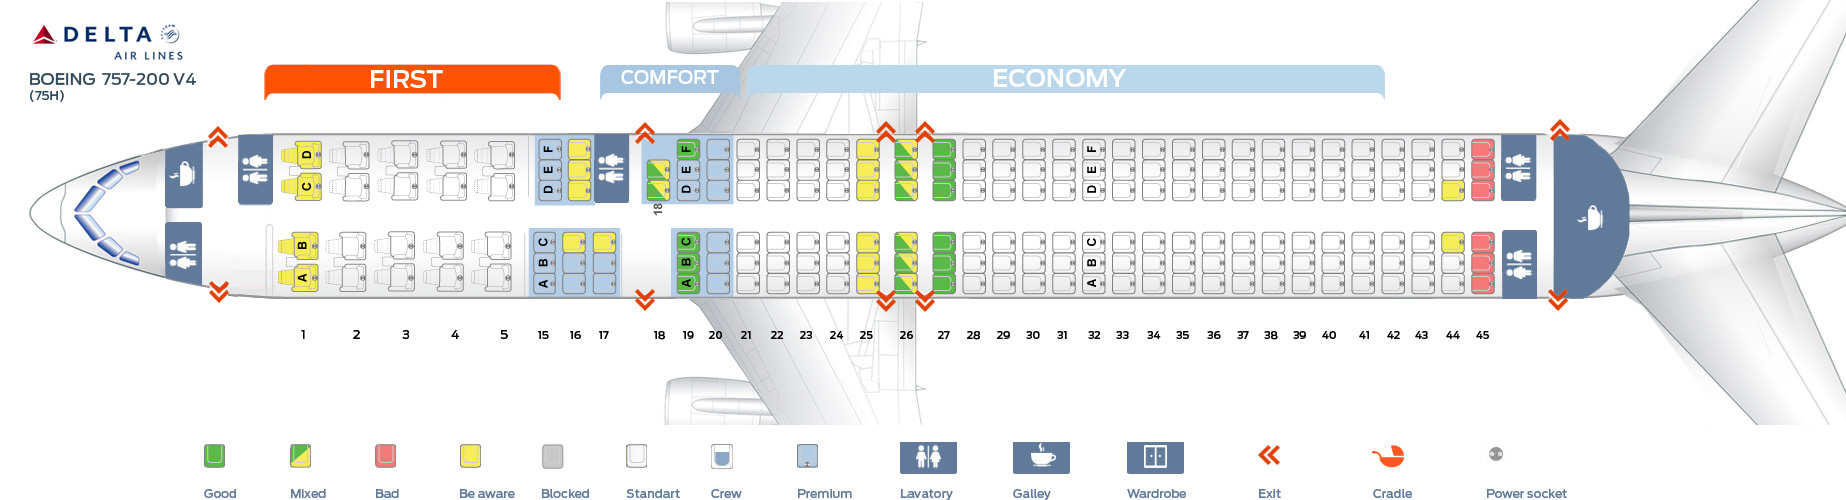 Seat_map_Delta_Airlines_Boeing_757-200_75H_v4